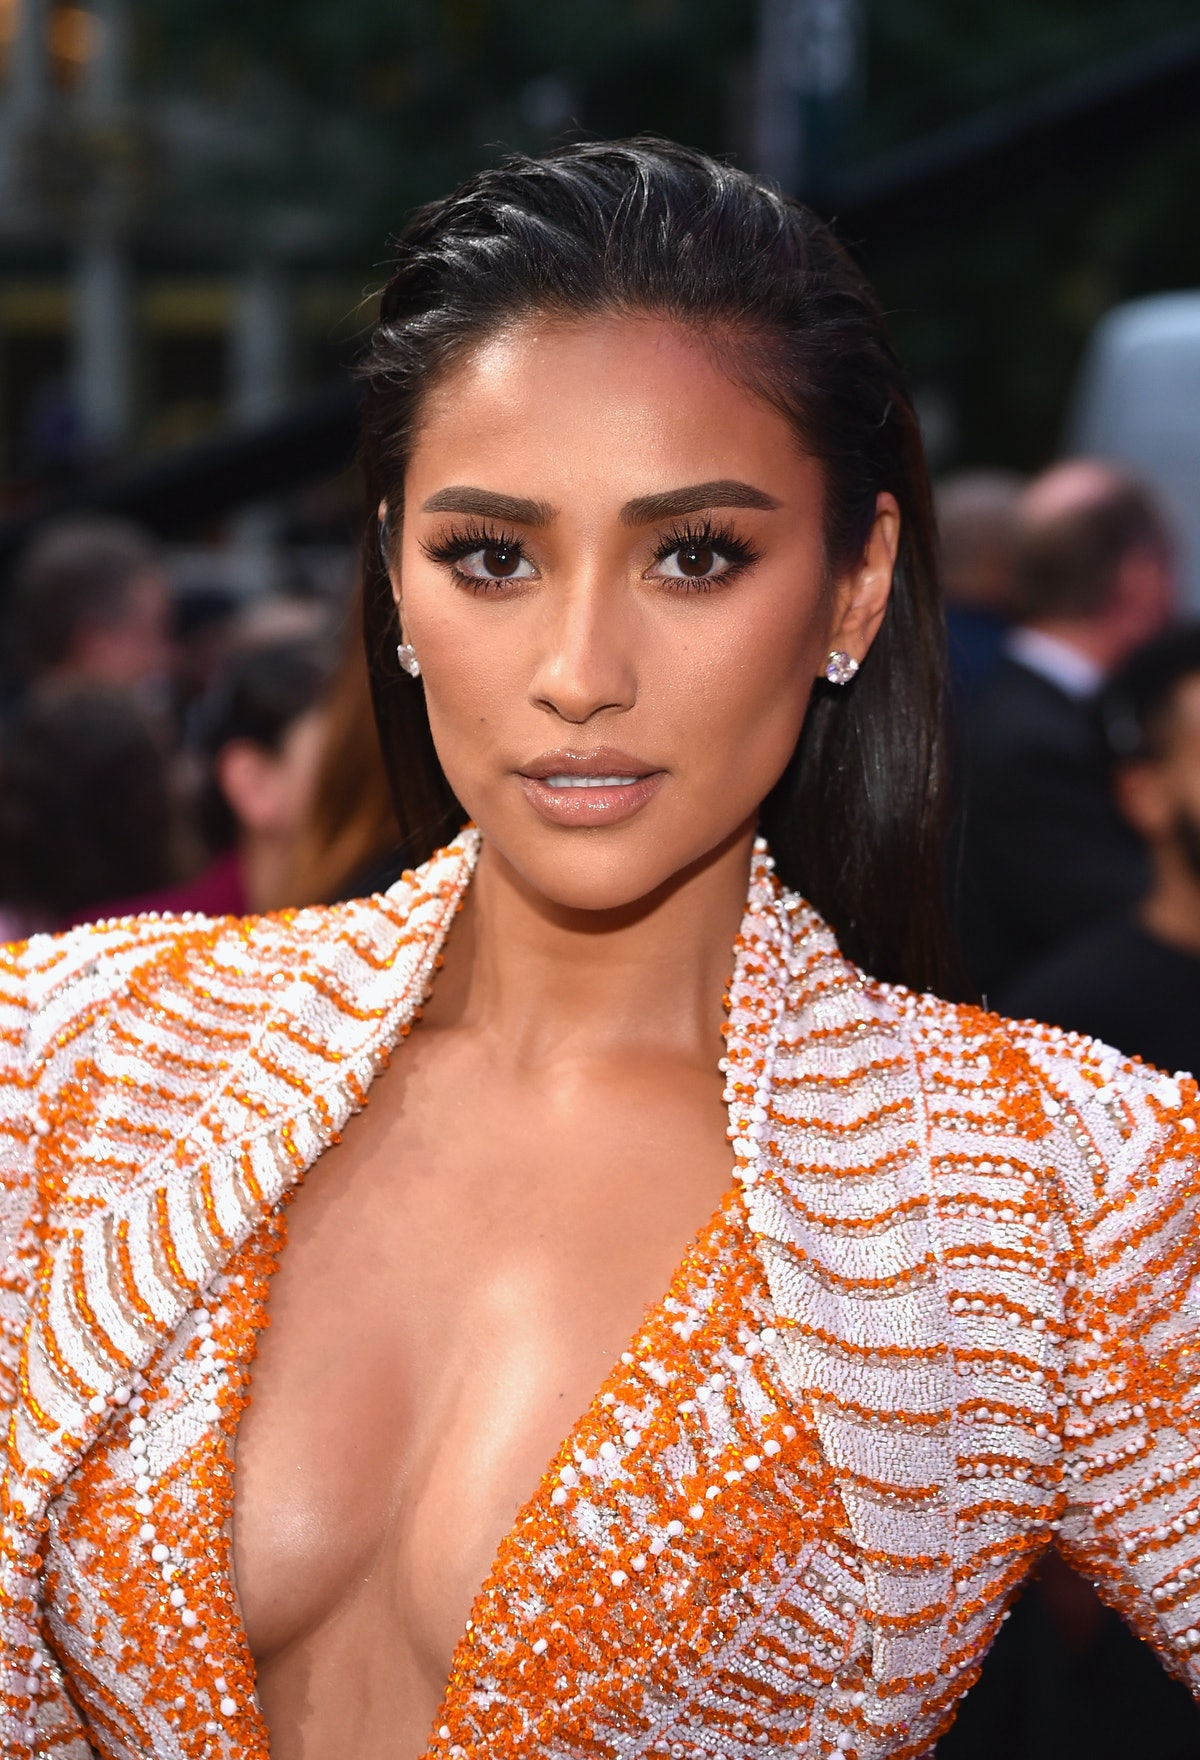 NEW YORK, NY - AUGUST 20:  Shay Mitchell attends the 2018 MTV Video Music Awards at Radio City Music Hall on August 20, 2018 in New York City.  (Photo by John Shearer/Getty Images for MTV)